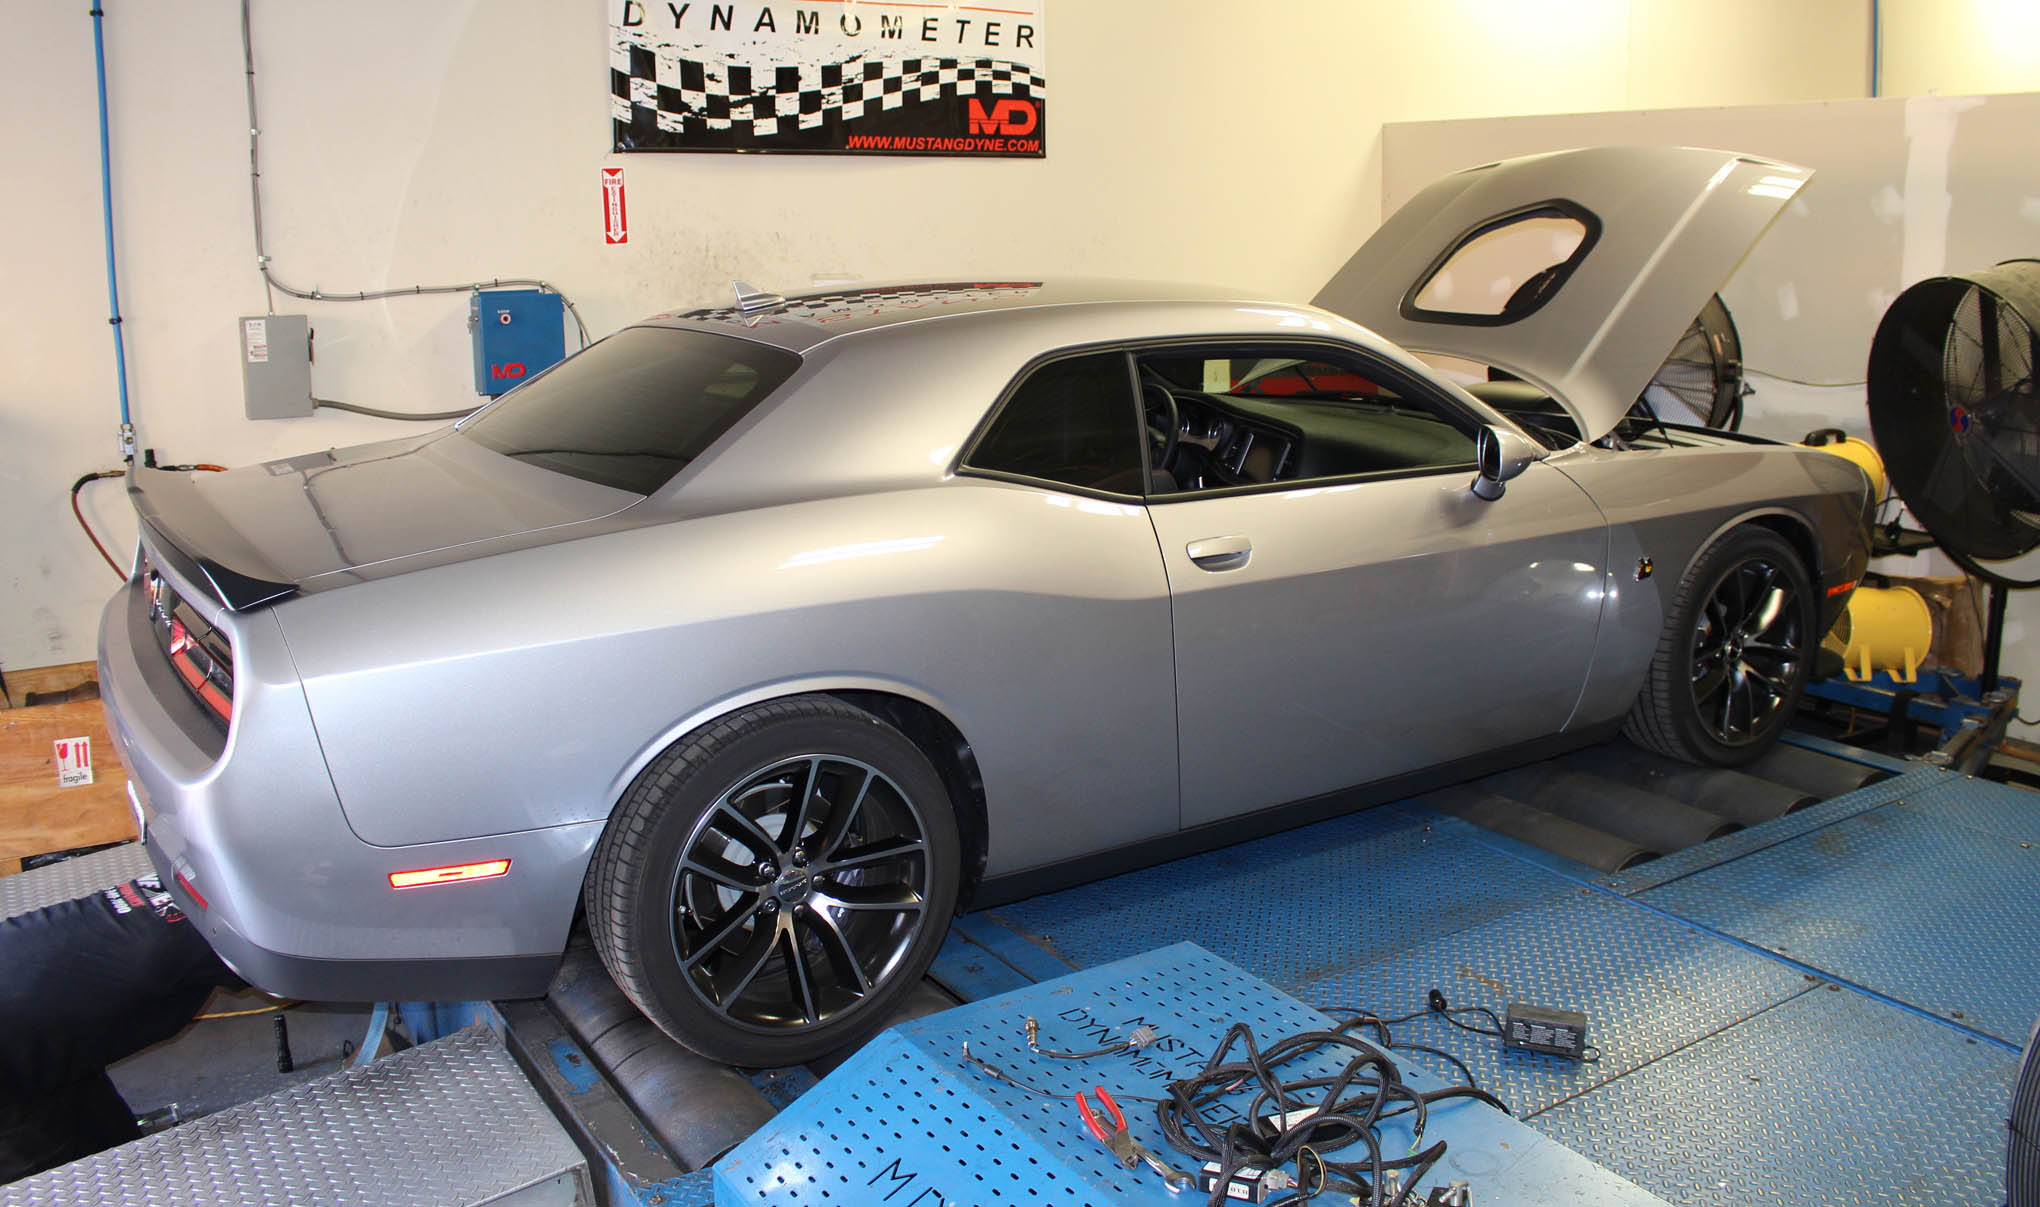 We packed our Trinity tuner and drove the 392 Hemi Challenger to Tune Time Performance (TTP). There we'll learn the bone-stock, stock-tune, and after-headers power numbers. Our bone-stock number was 371 hp at the wheels. (You'll remember our press car tested at 432 rearwheel horsepower to the wheels on a Dynojet.) That sounds low compared to other Scat Packs because TTP's Mustang dyno will show 10 to 12 percent less power.